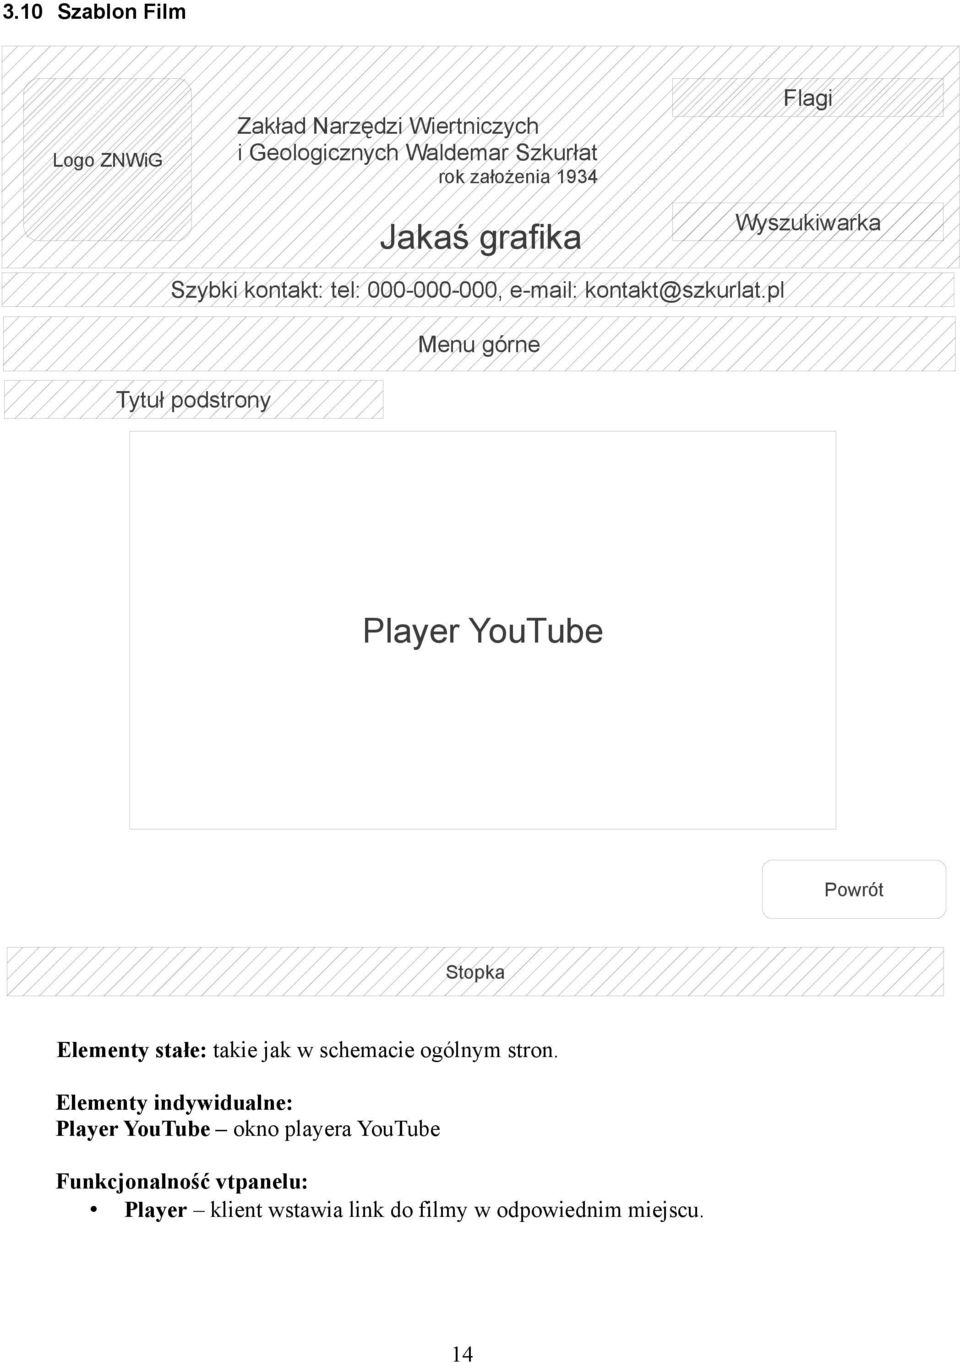 Player YouTube okno playera YouTube Funkcjonalność